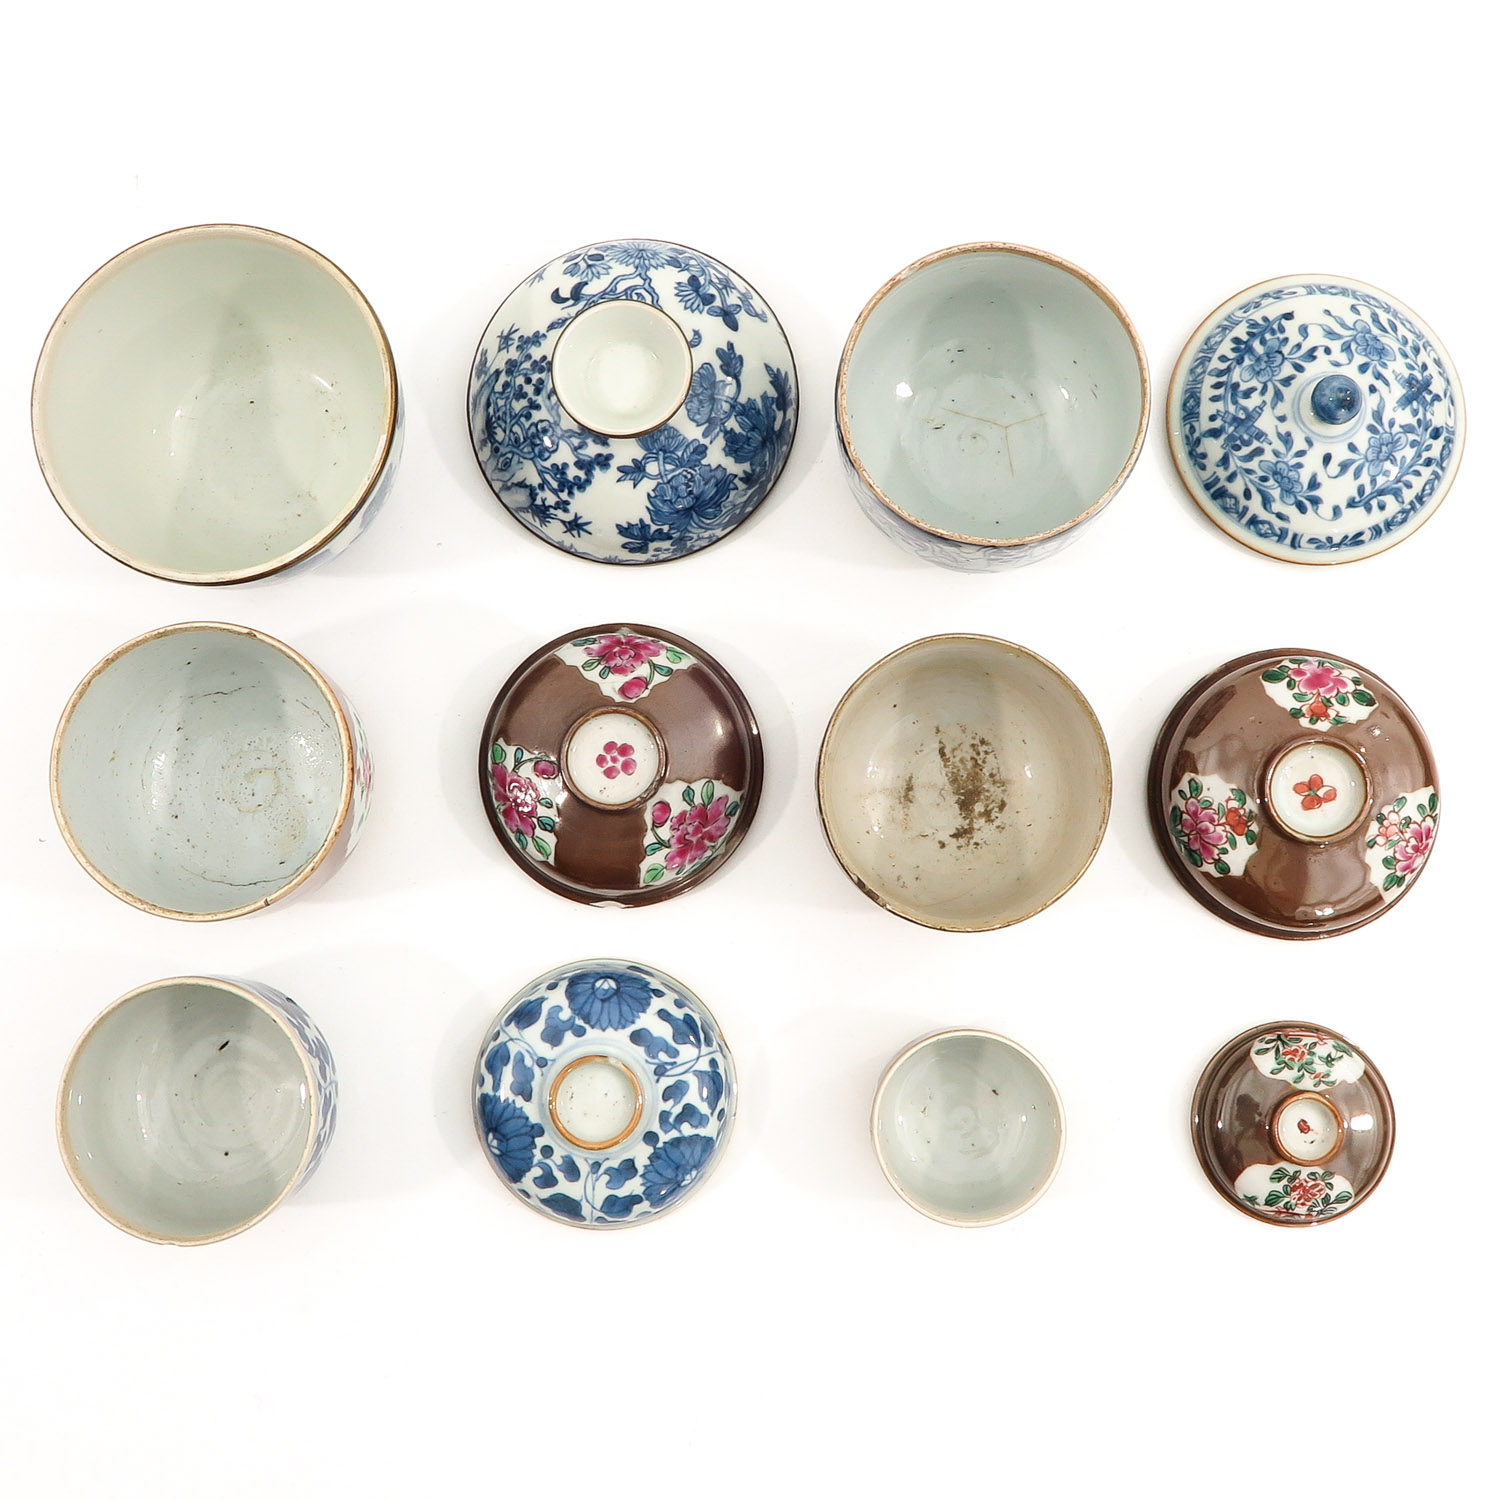 A Collection of Jars with Covers - Image 5 of 10